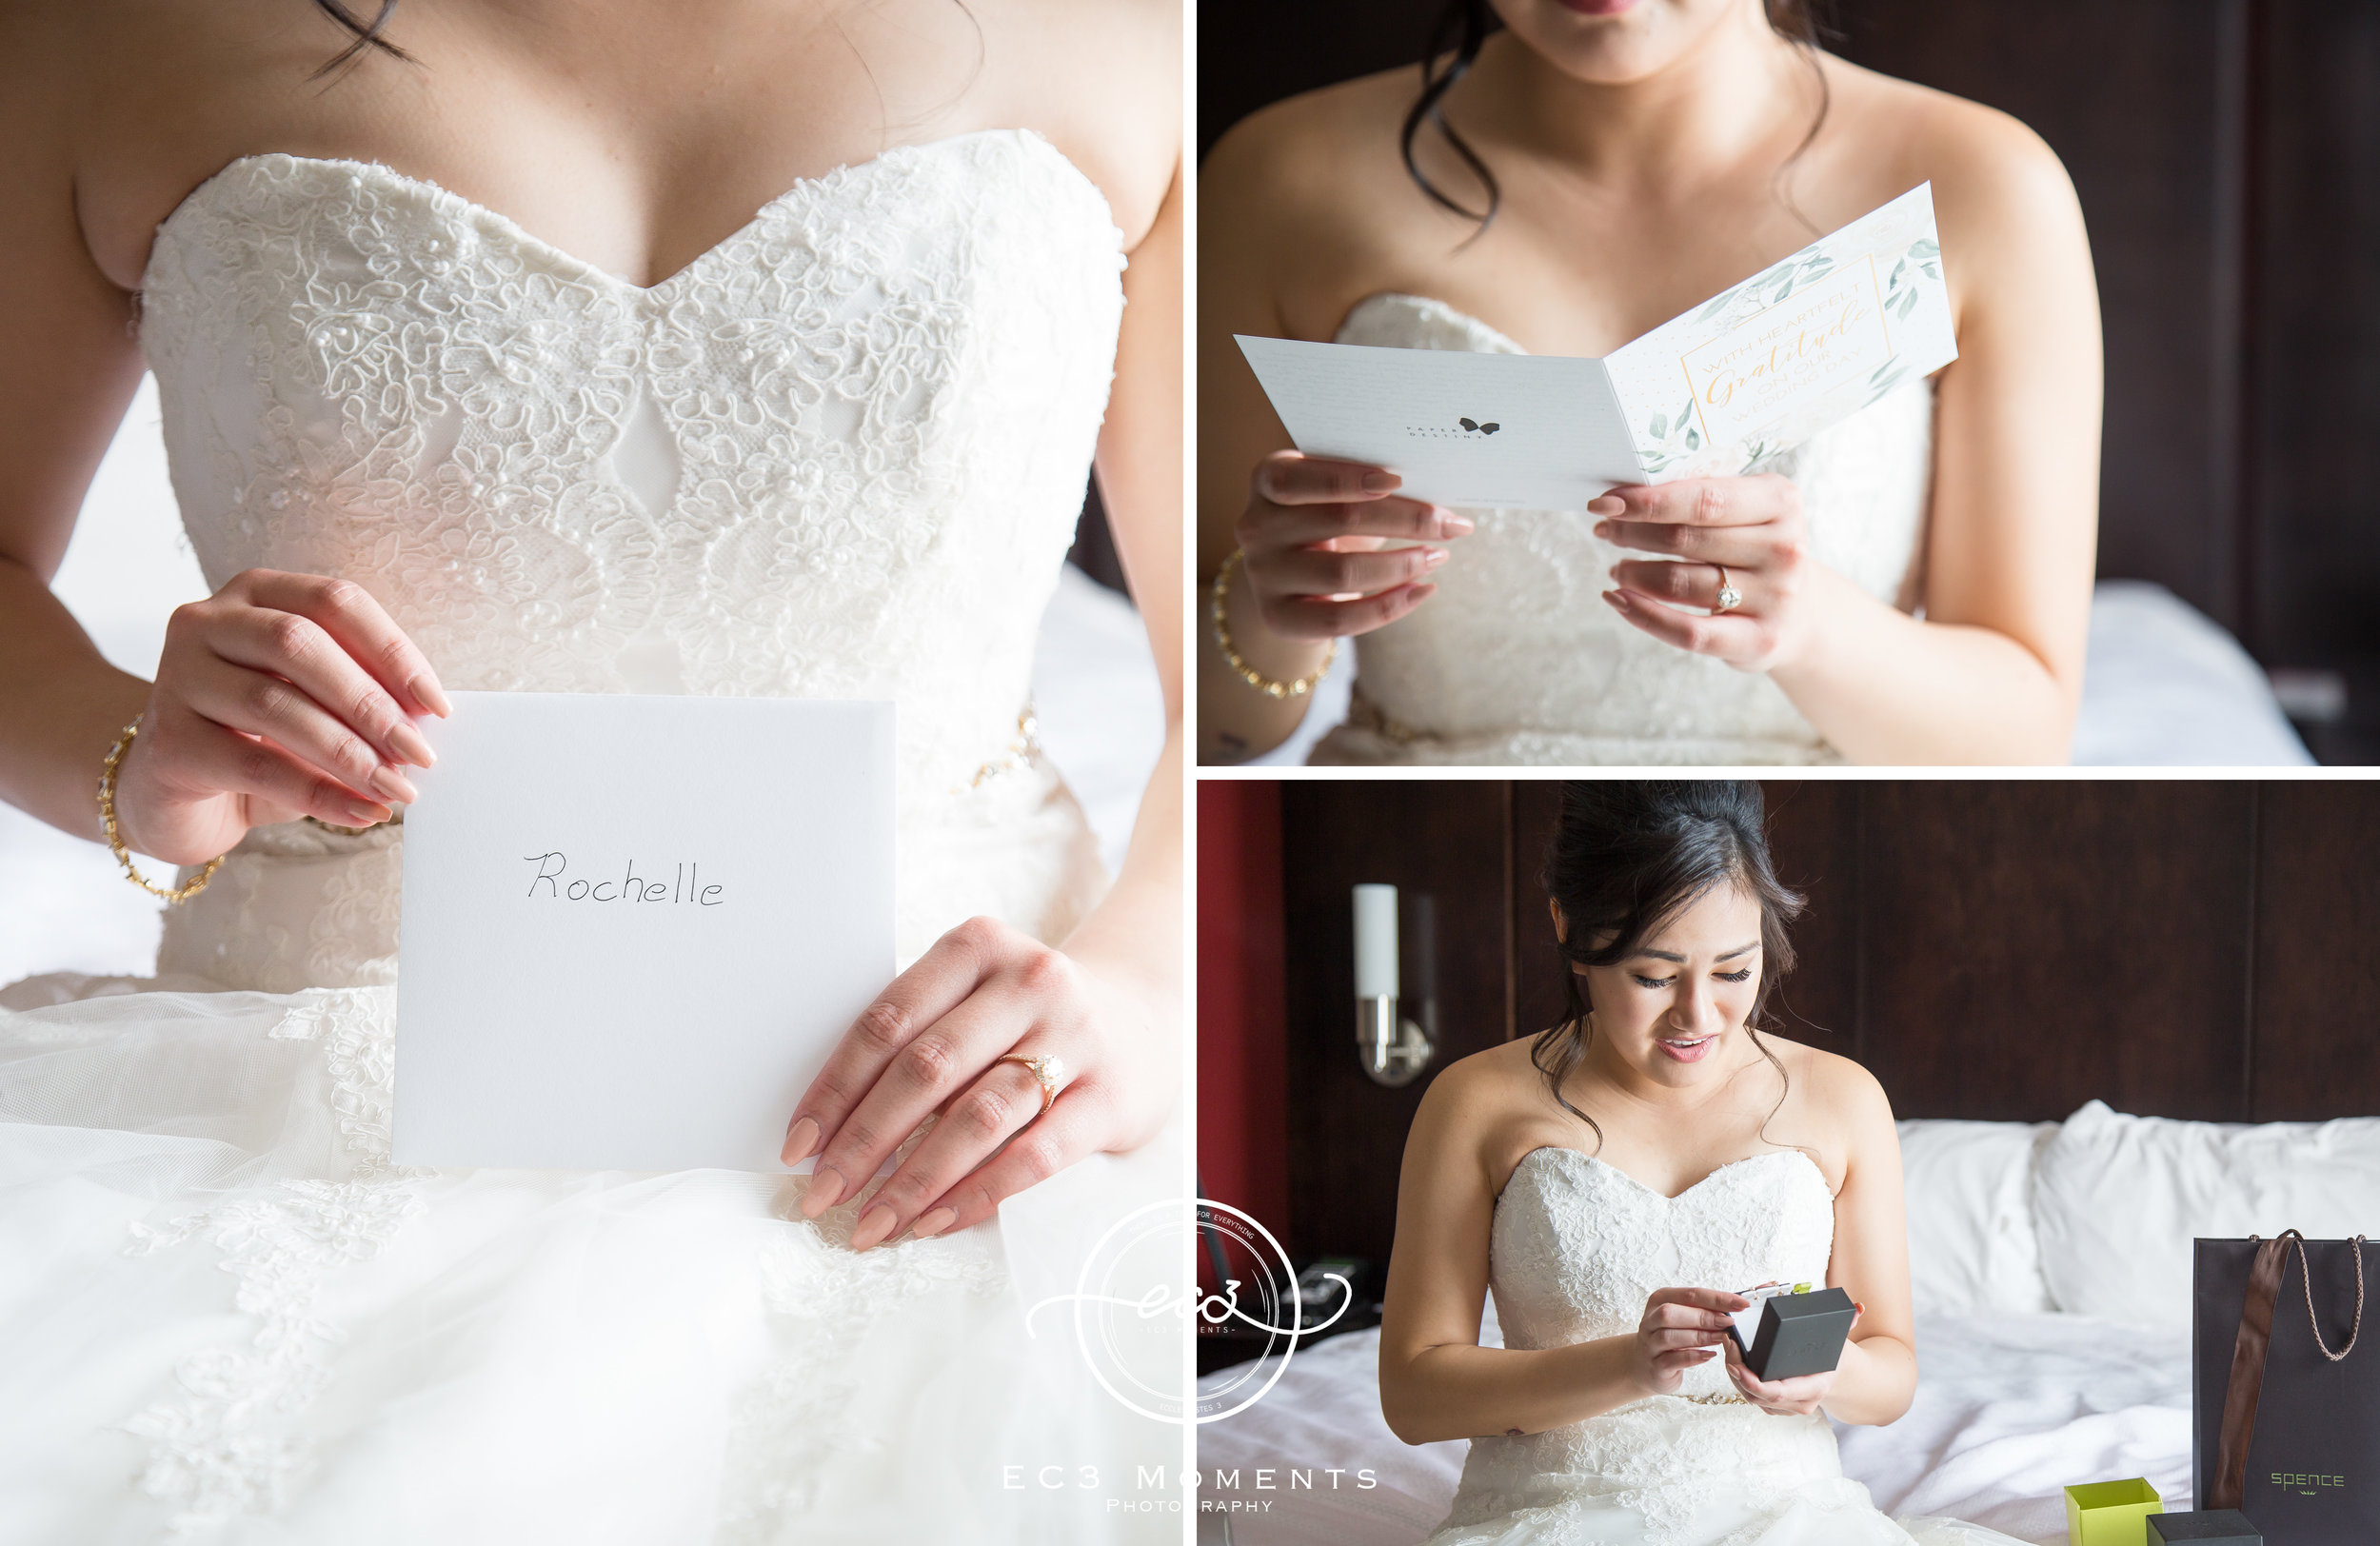 Rochelle & Anton's McMaster University Wedding 17.jpg